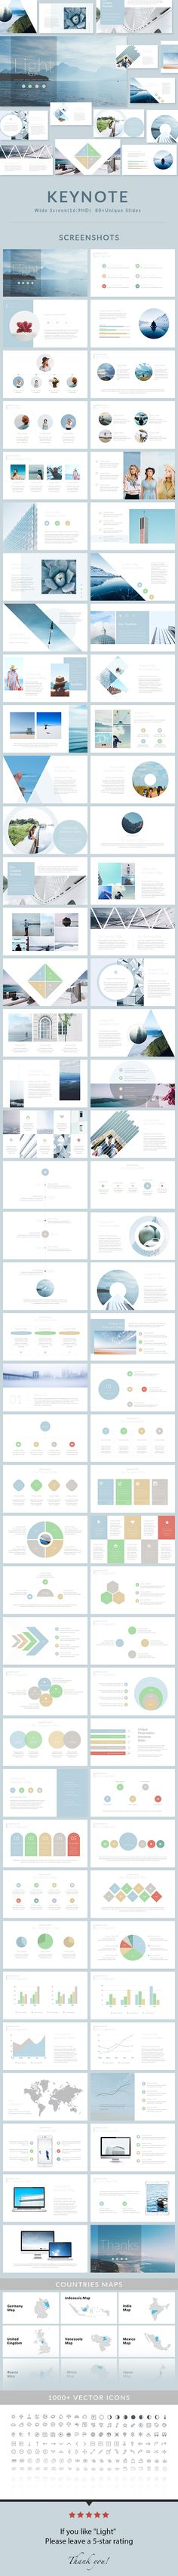 gold - clean keynote template, Presentation templates